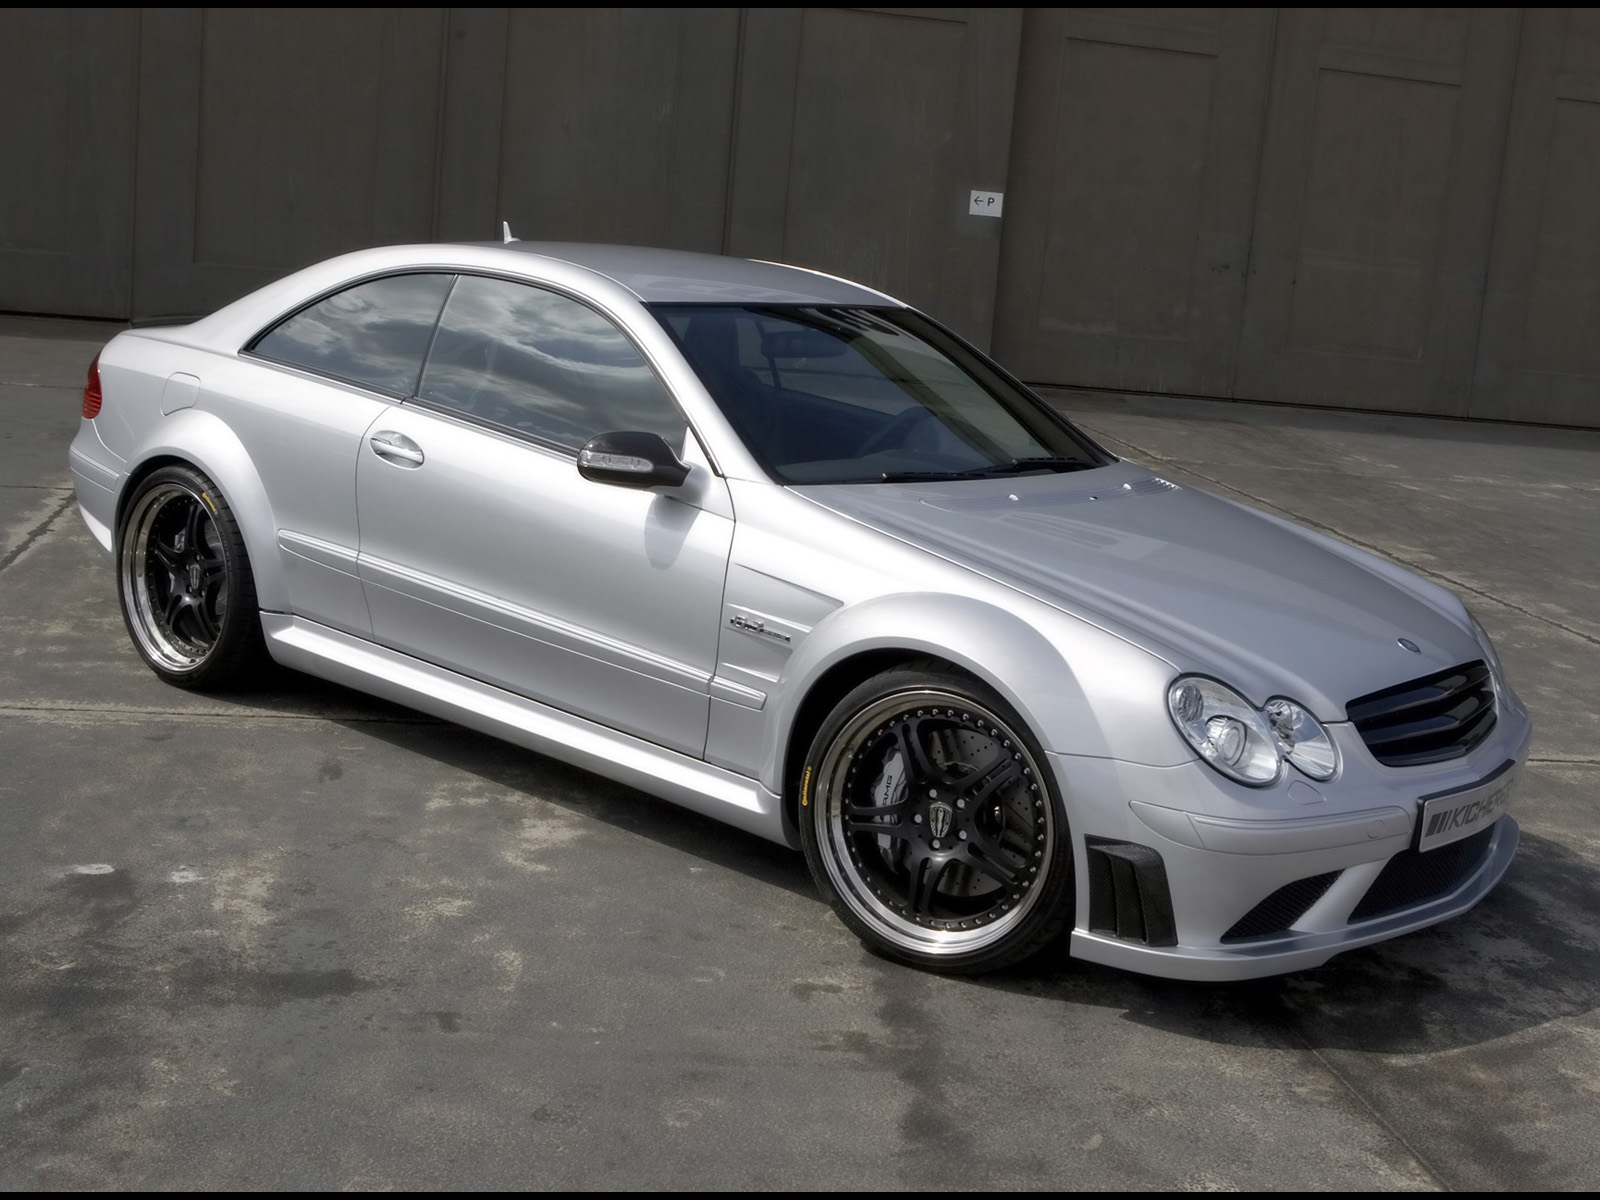 Kicherer mercedes benz clk 63 amg photos photogallery for Mercedes benz clk 63 amg